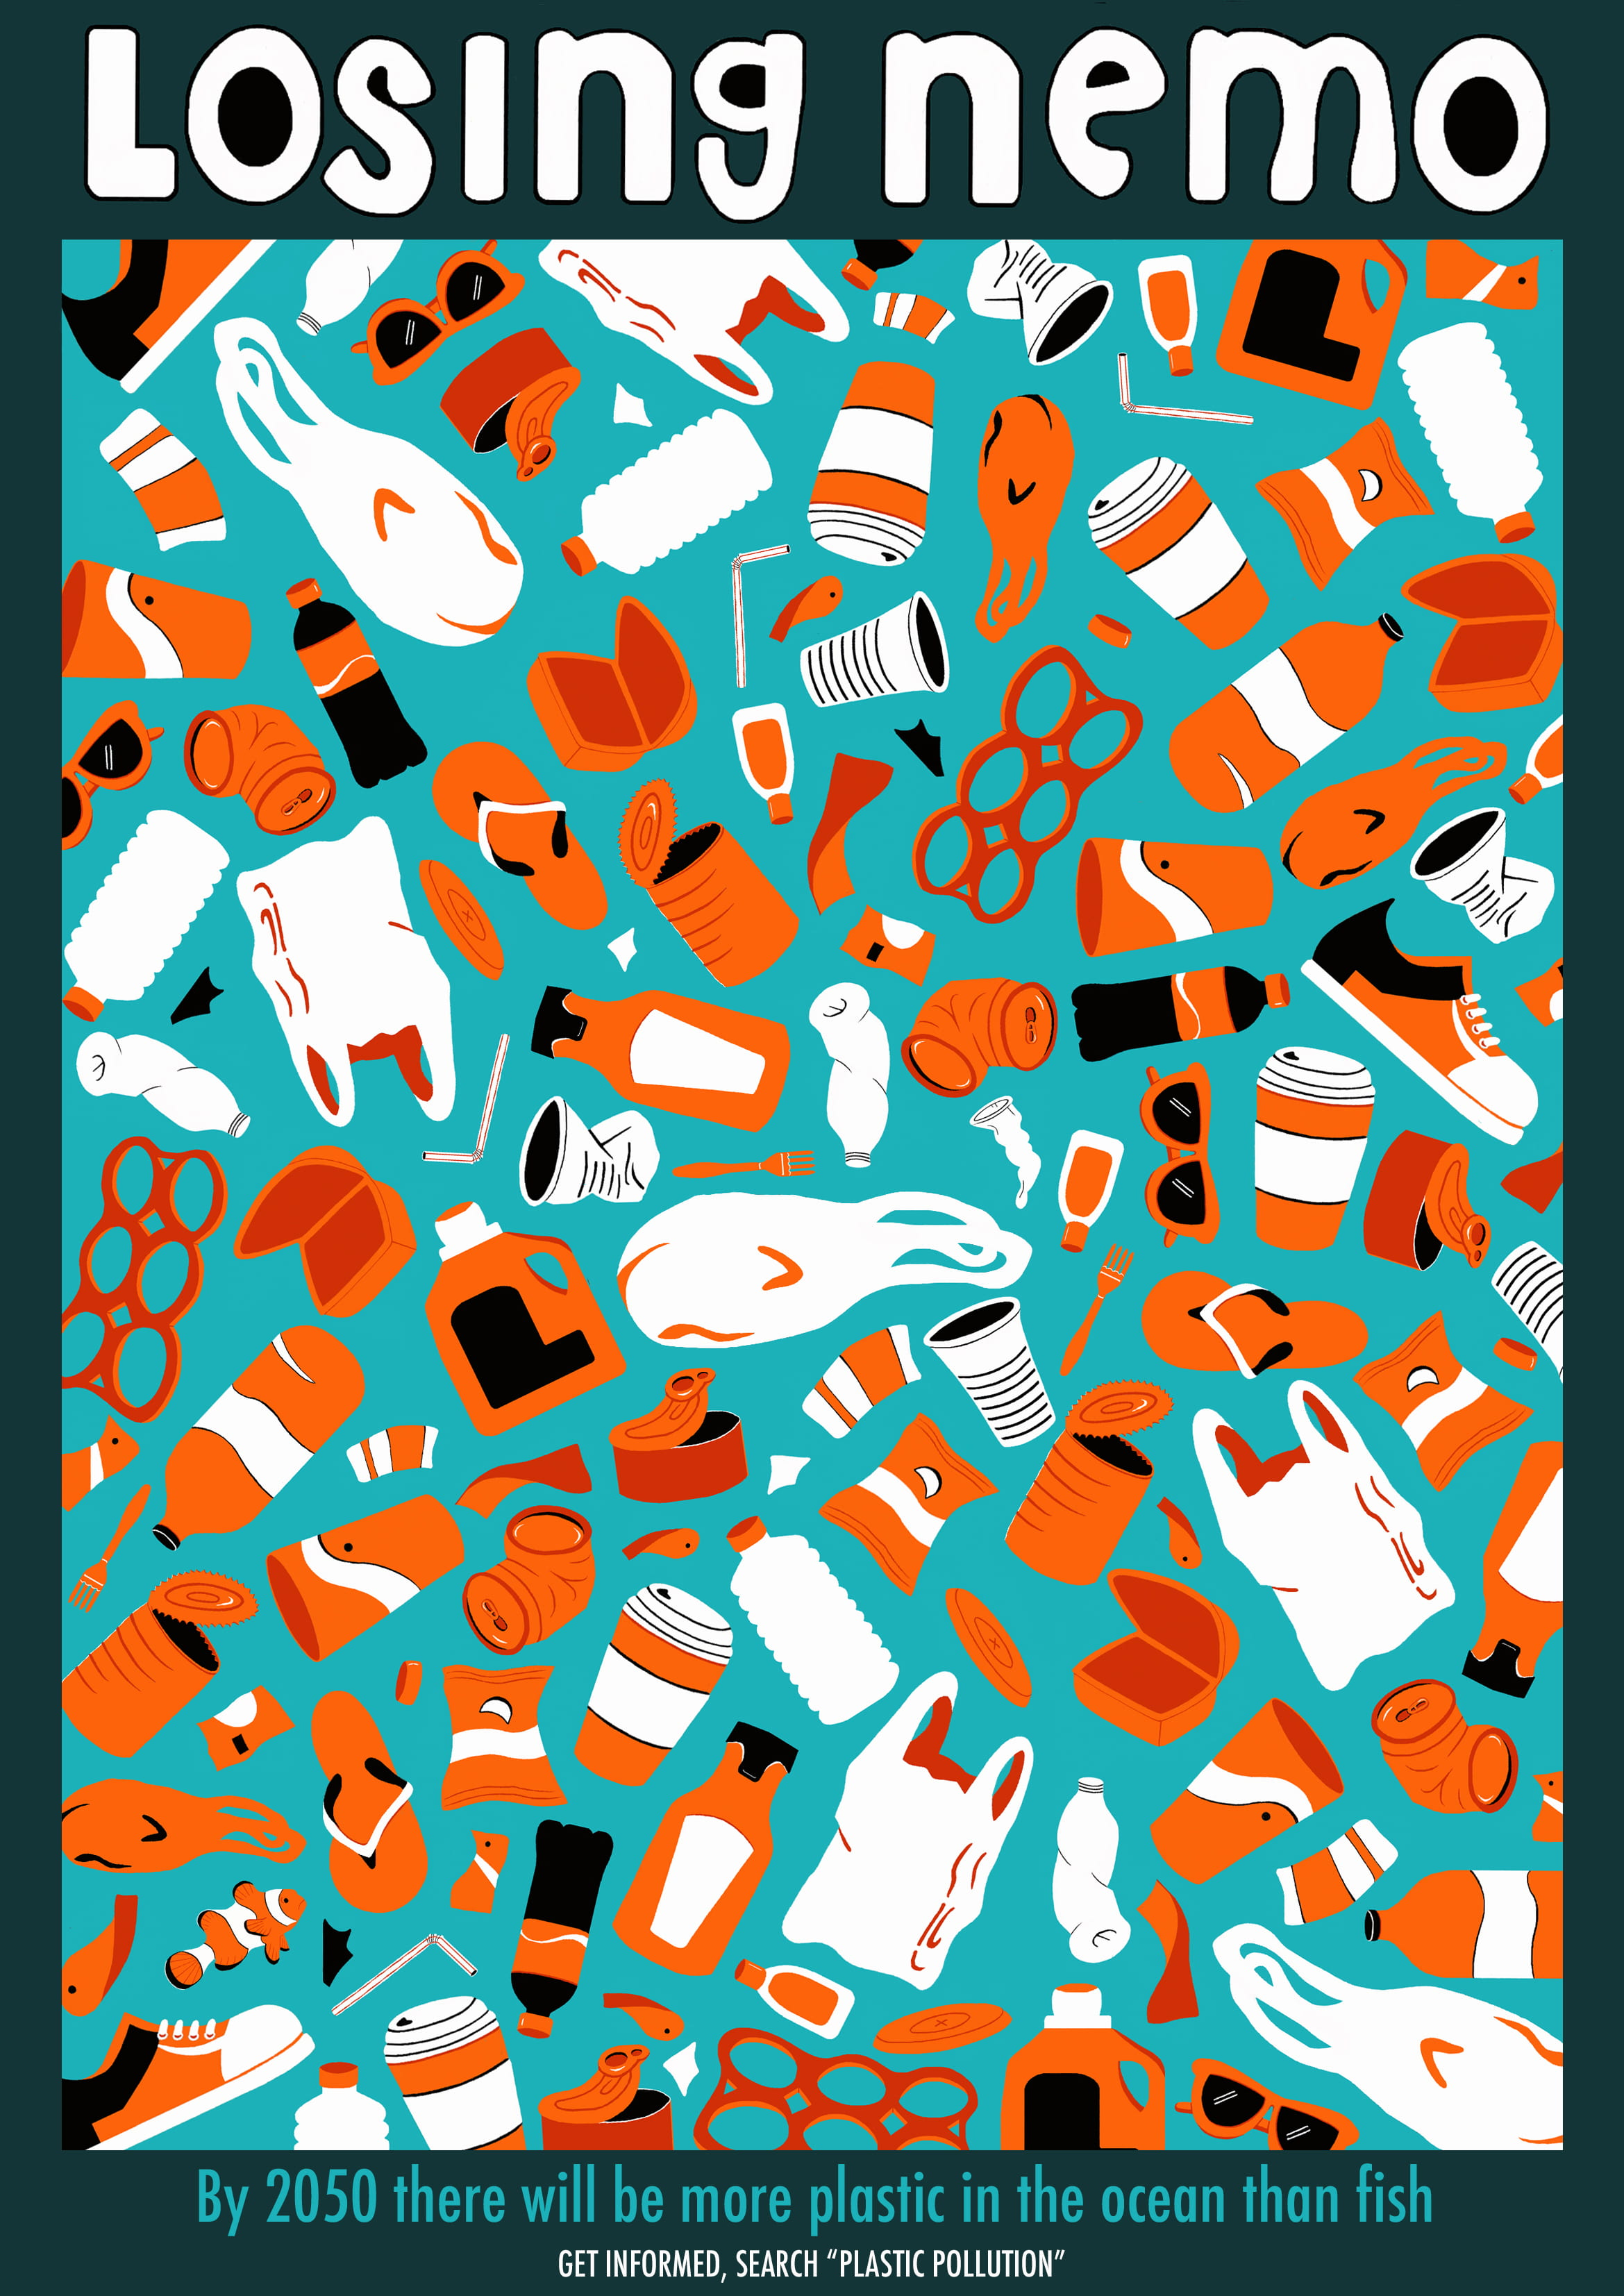 An illustrated poster, images of plastic waste in an orange and white colour scheme, the title reads: 'Losing Nemo'.